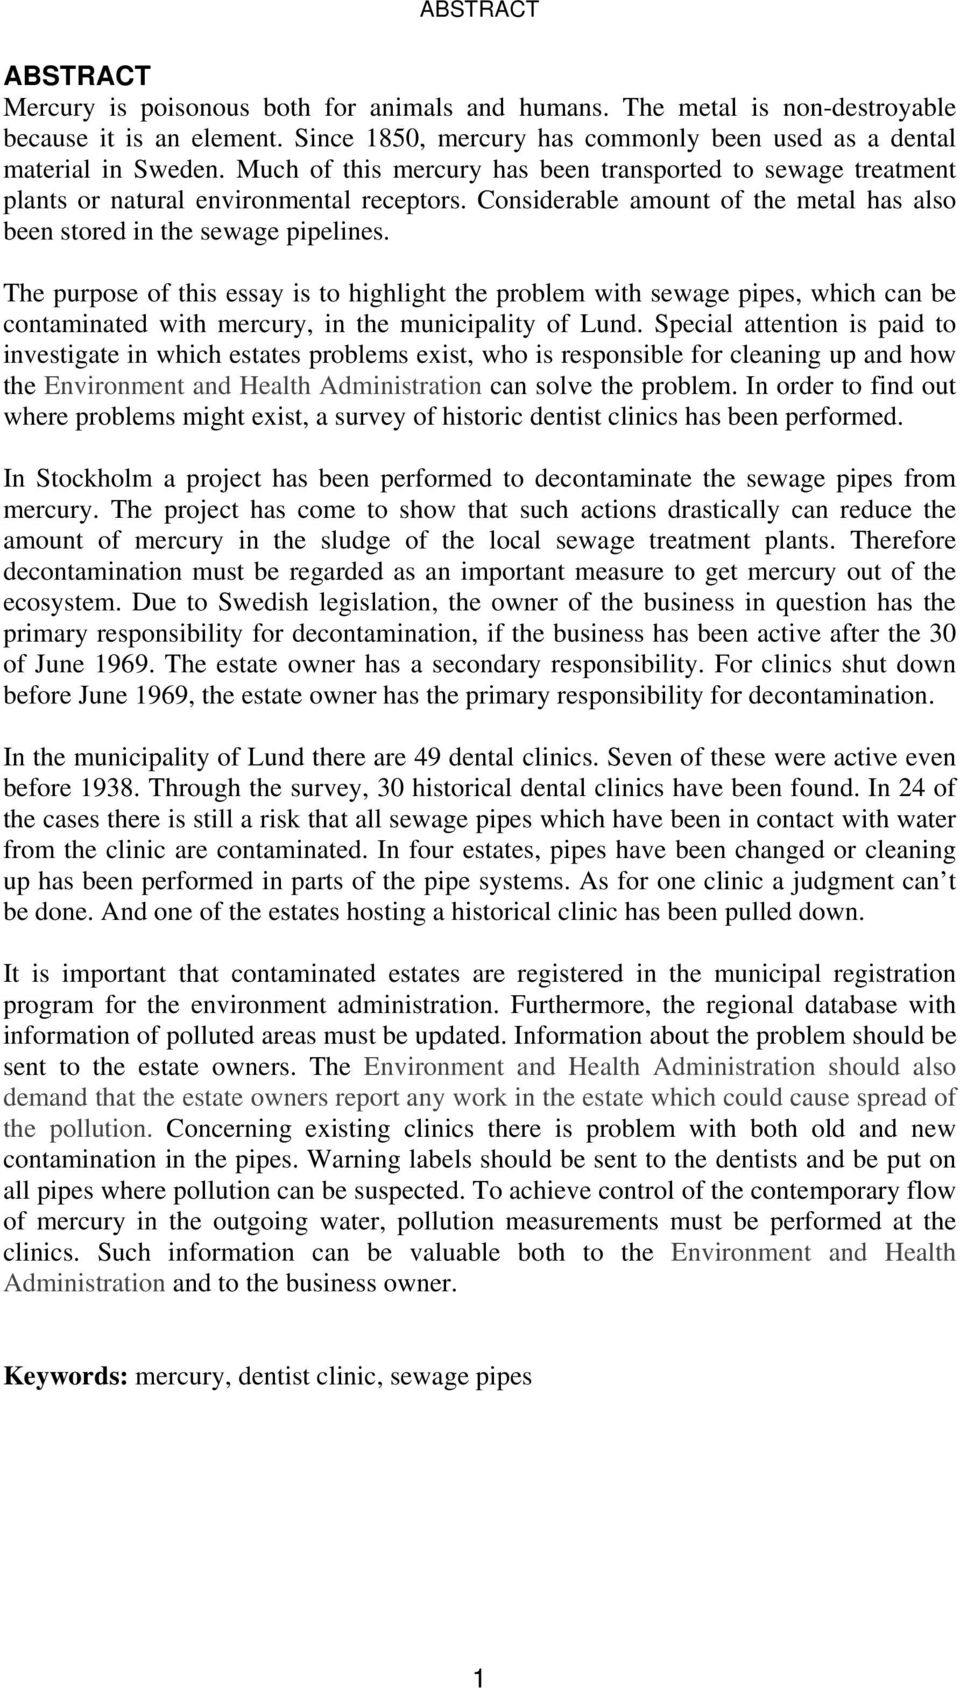 The purpose of this essay is to highlight the problem with sewage pipes, which can be contaminated with mercury, in the municipality of Lund.